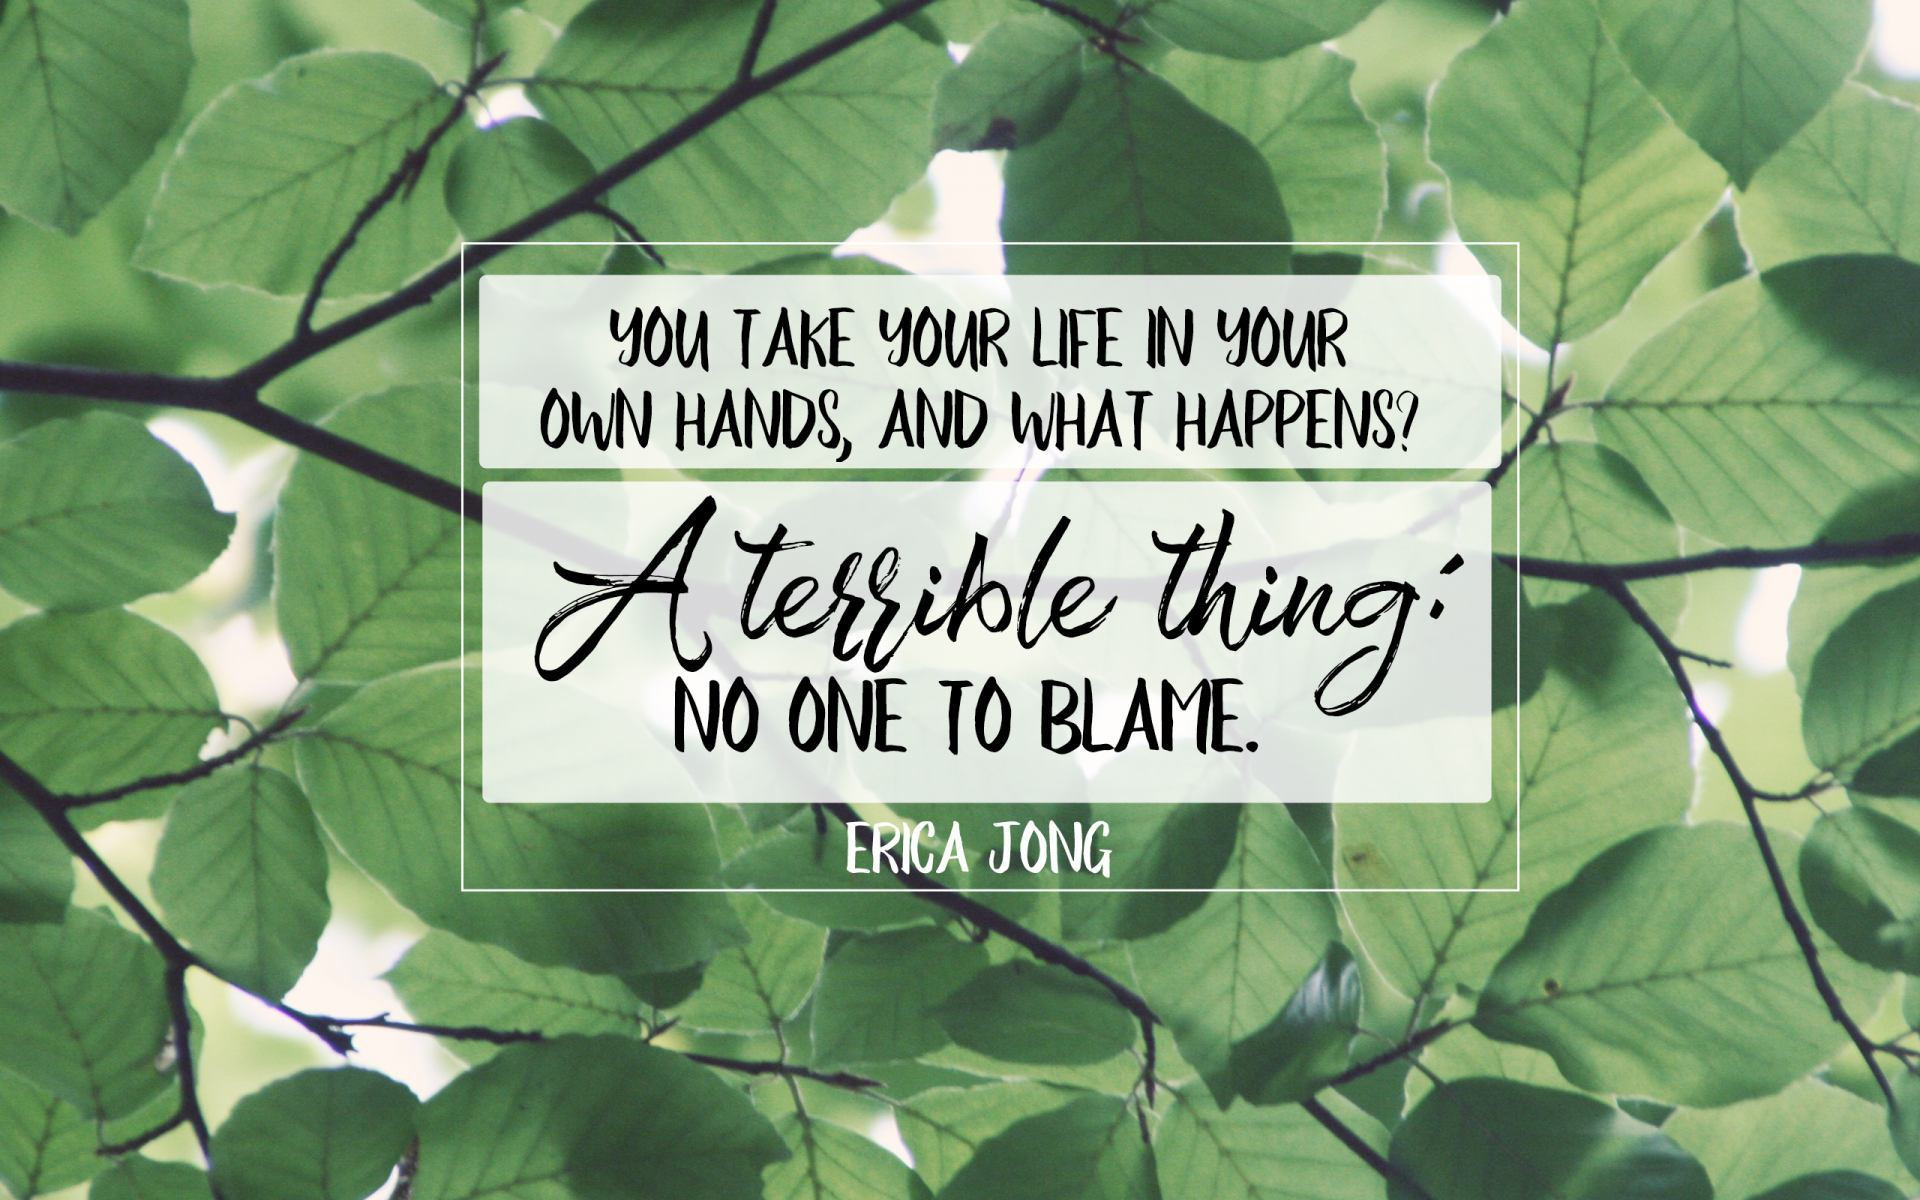 """You take your life in your own hands, and what happens? A terrible thing; no one to blame."" Erica Jong! [1920×1200]"